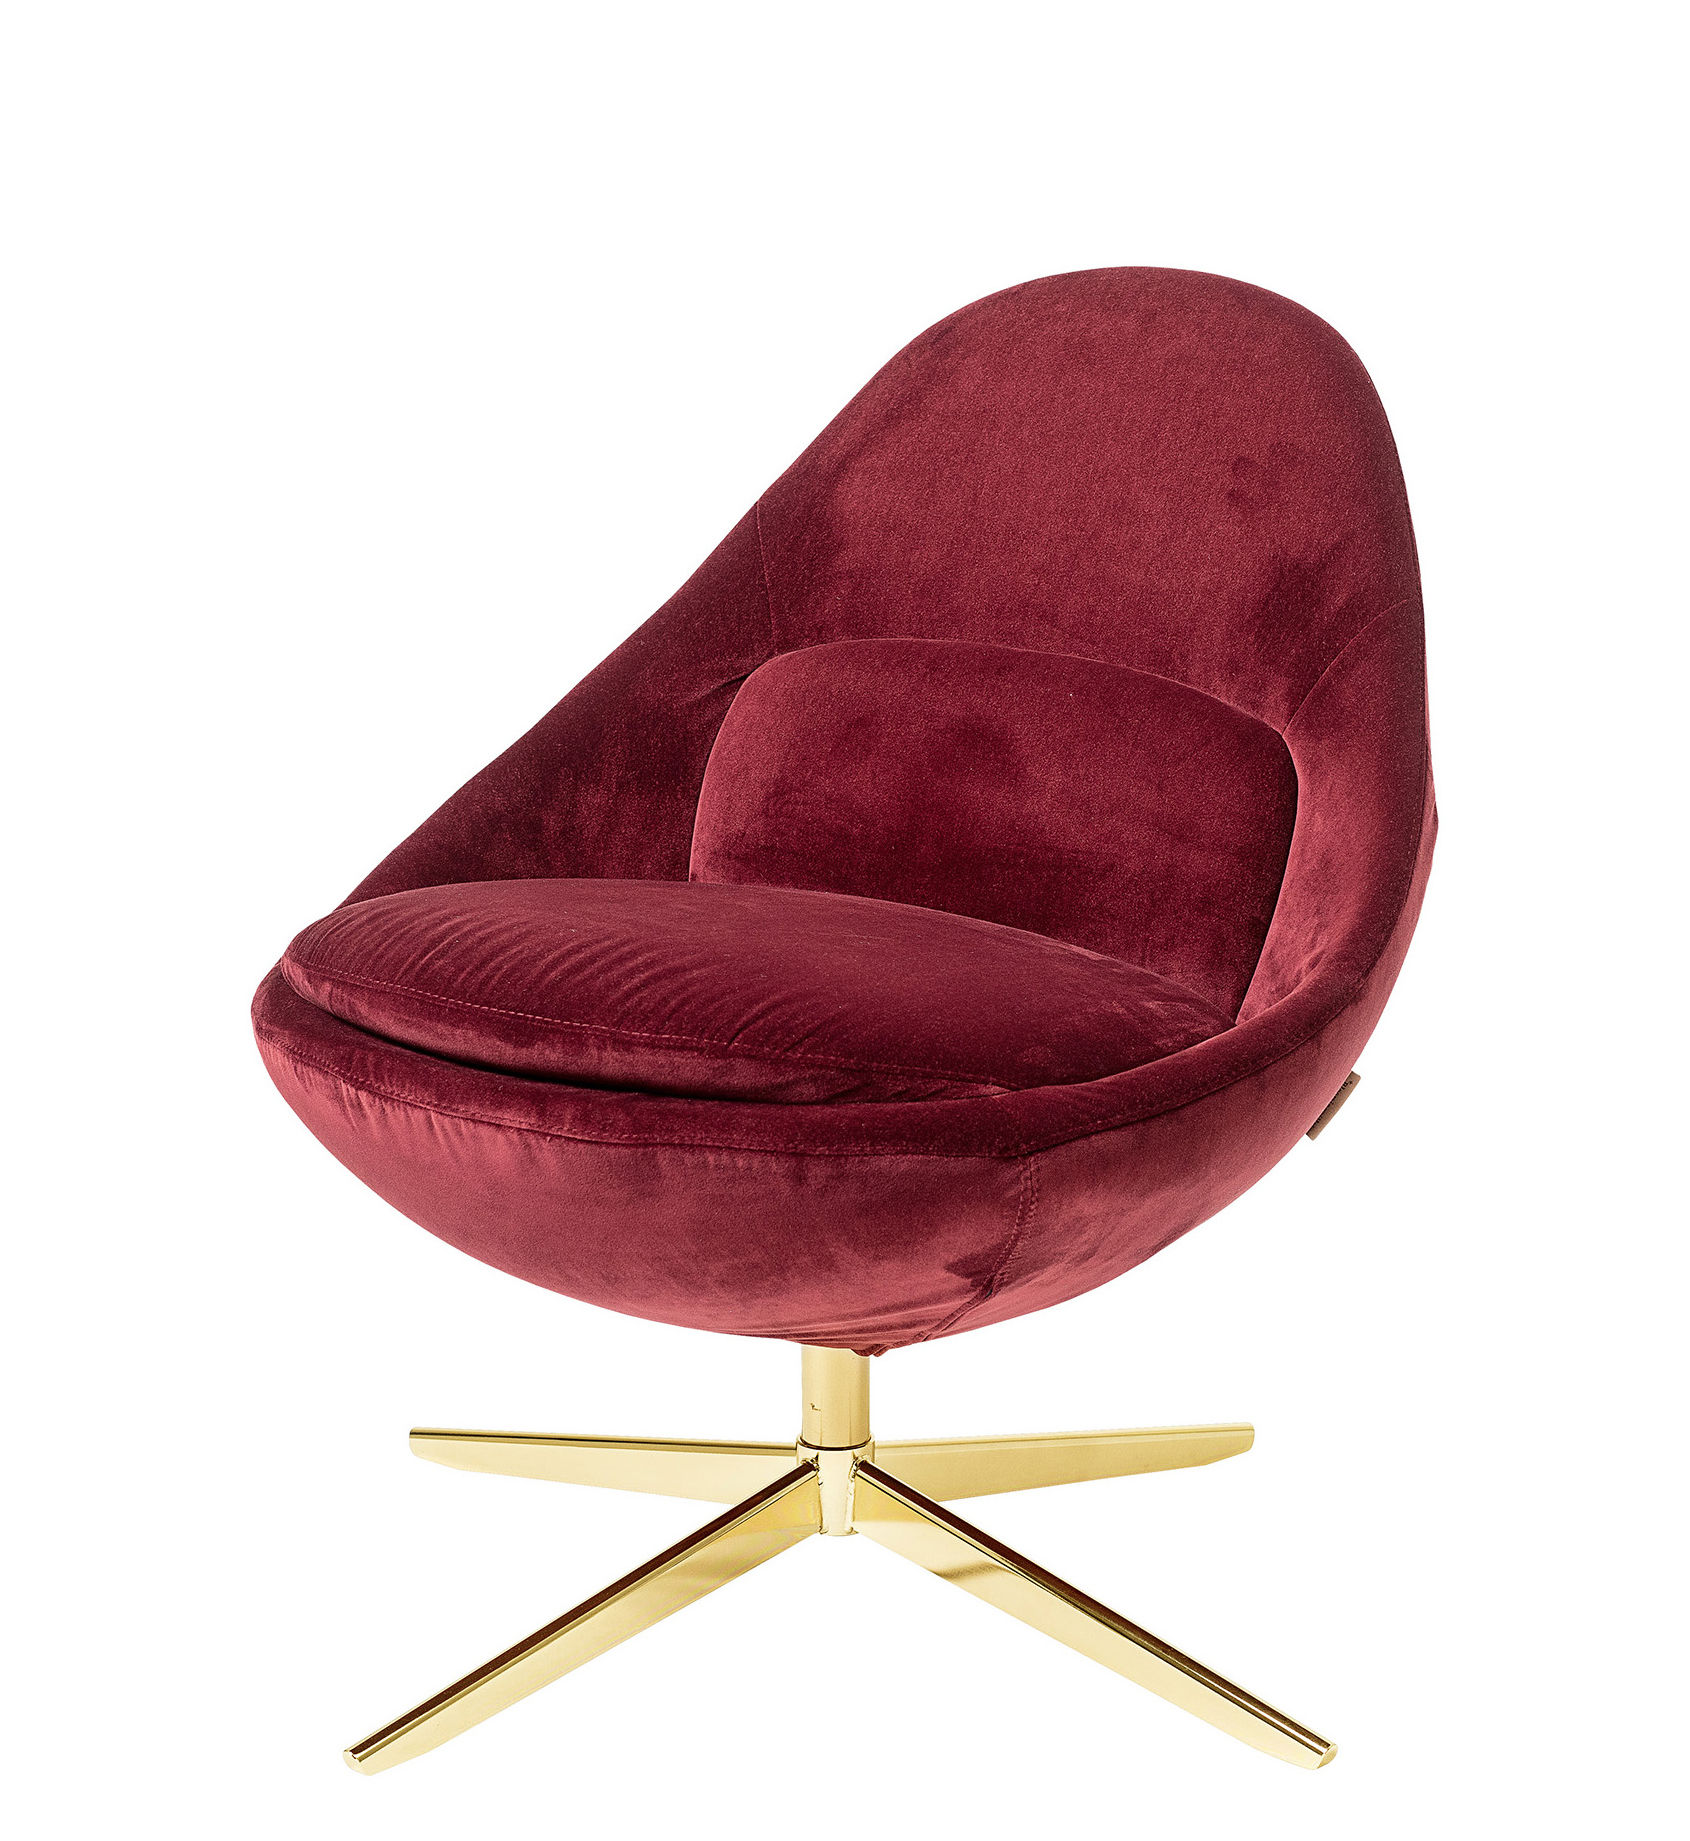 Furniture - Armchairs - Dawn Swivel armchair - / Padded - Velour by Bloomingville - Red / Gold - High resilience foam, Metal, Velvet